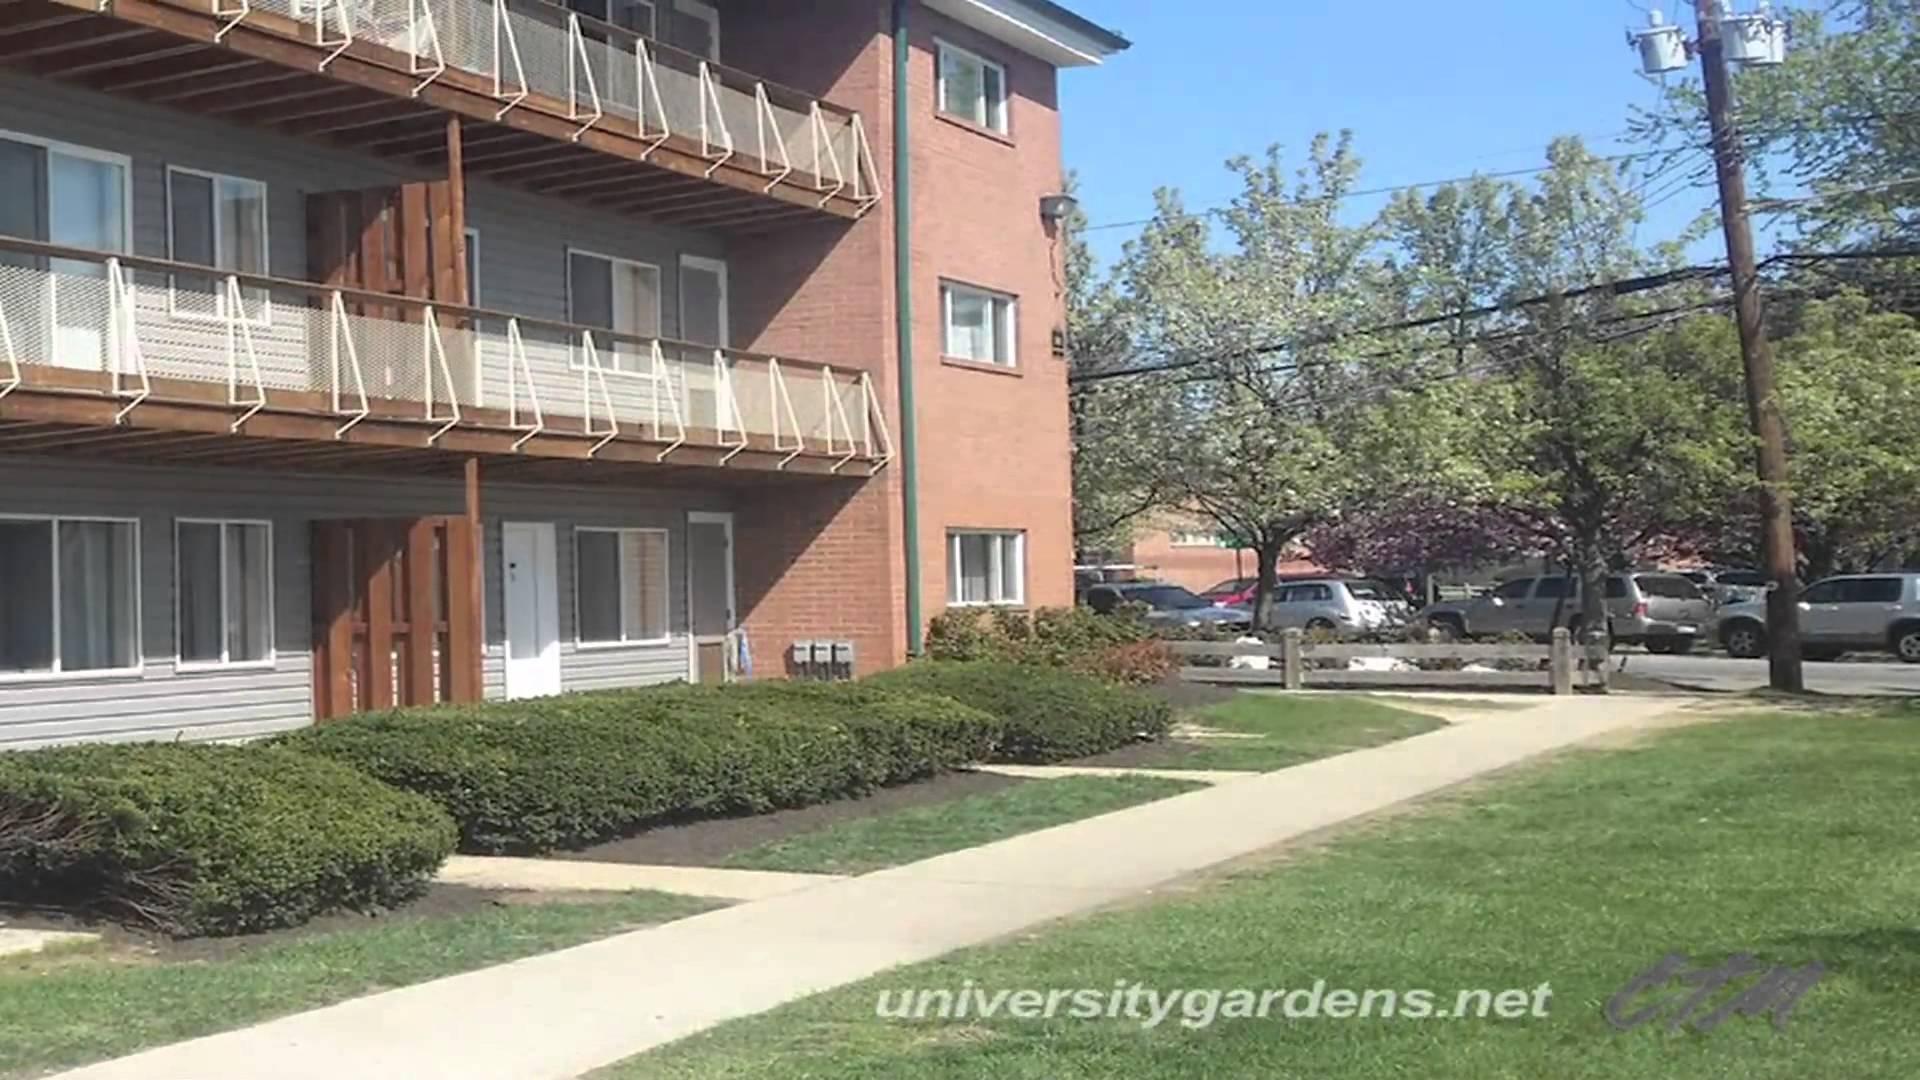 University Gardens | Adelphi Md Apartments | Southern Management within Campus Gardens Apartments